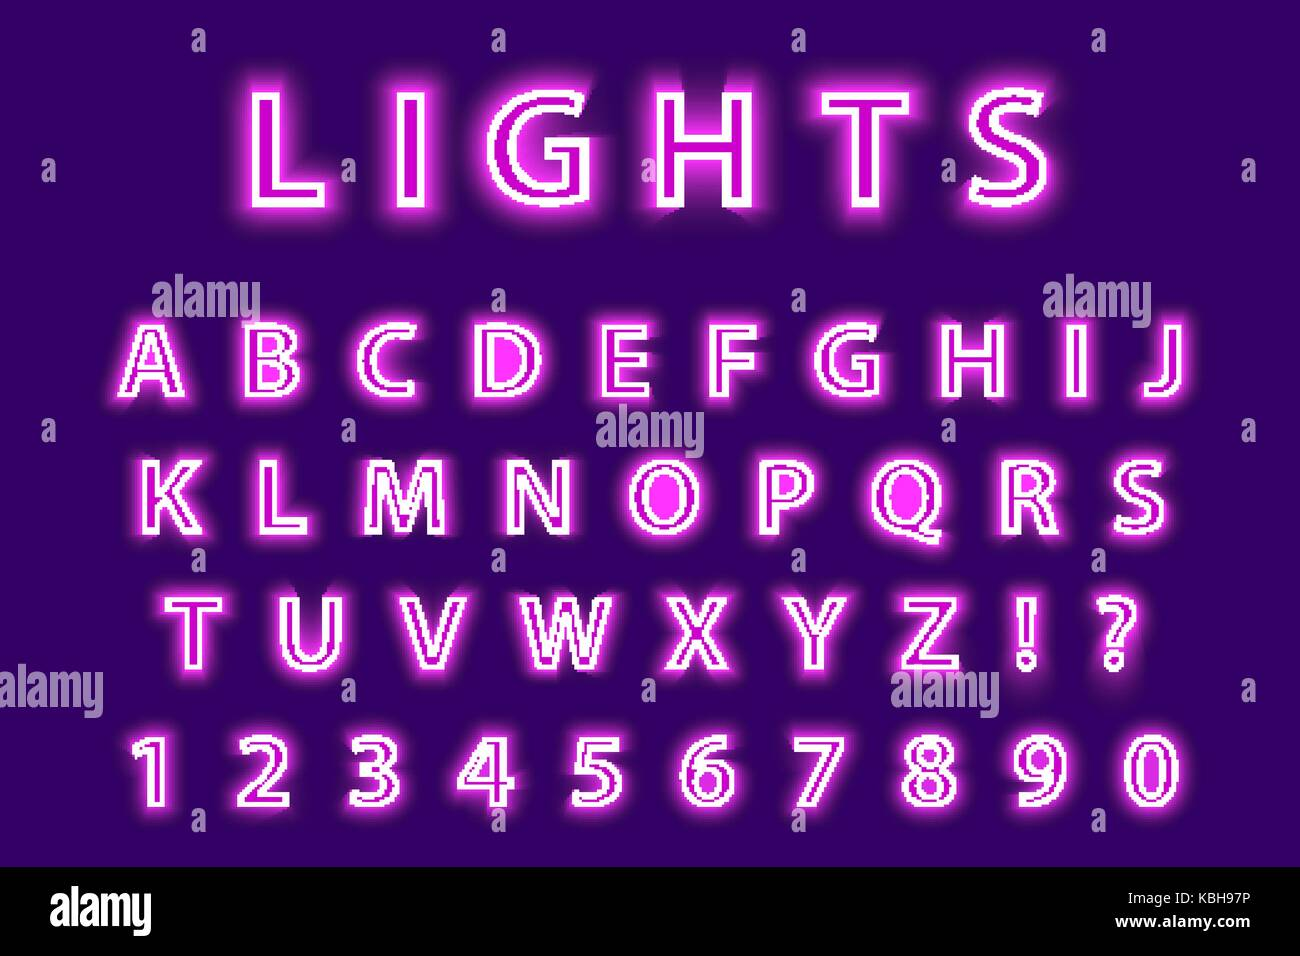 Led Font Stock Photos & Led Font Stock Images - Alamy